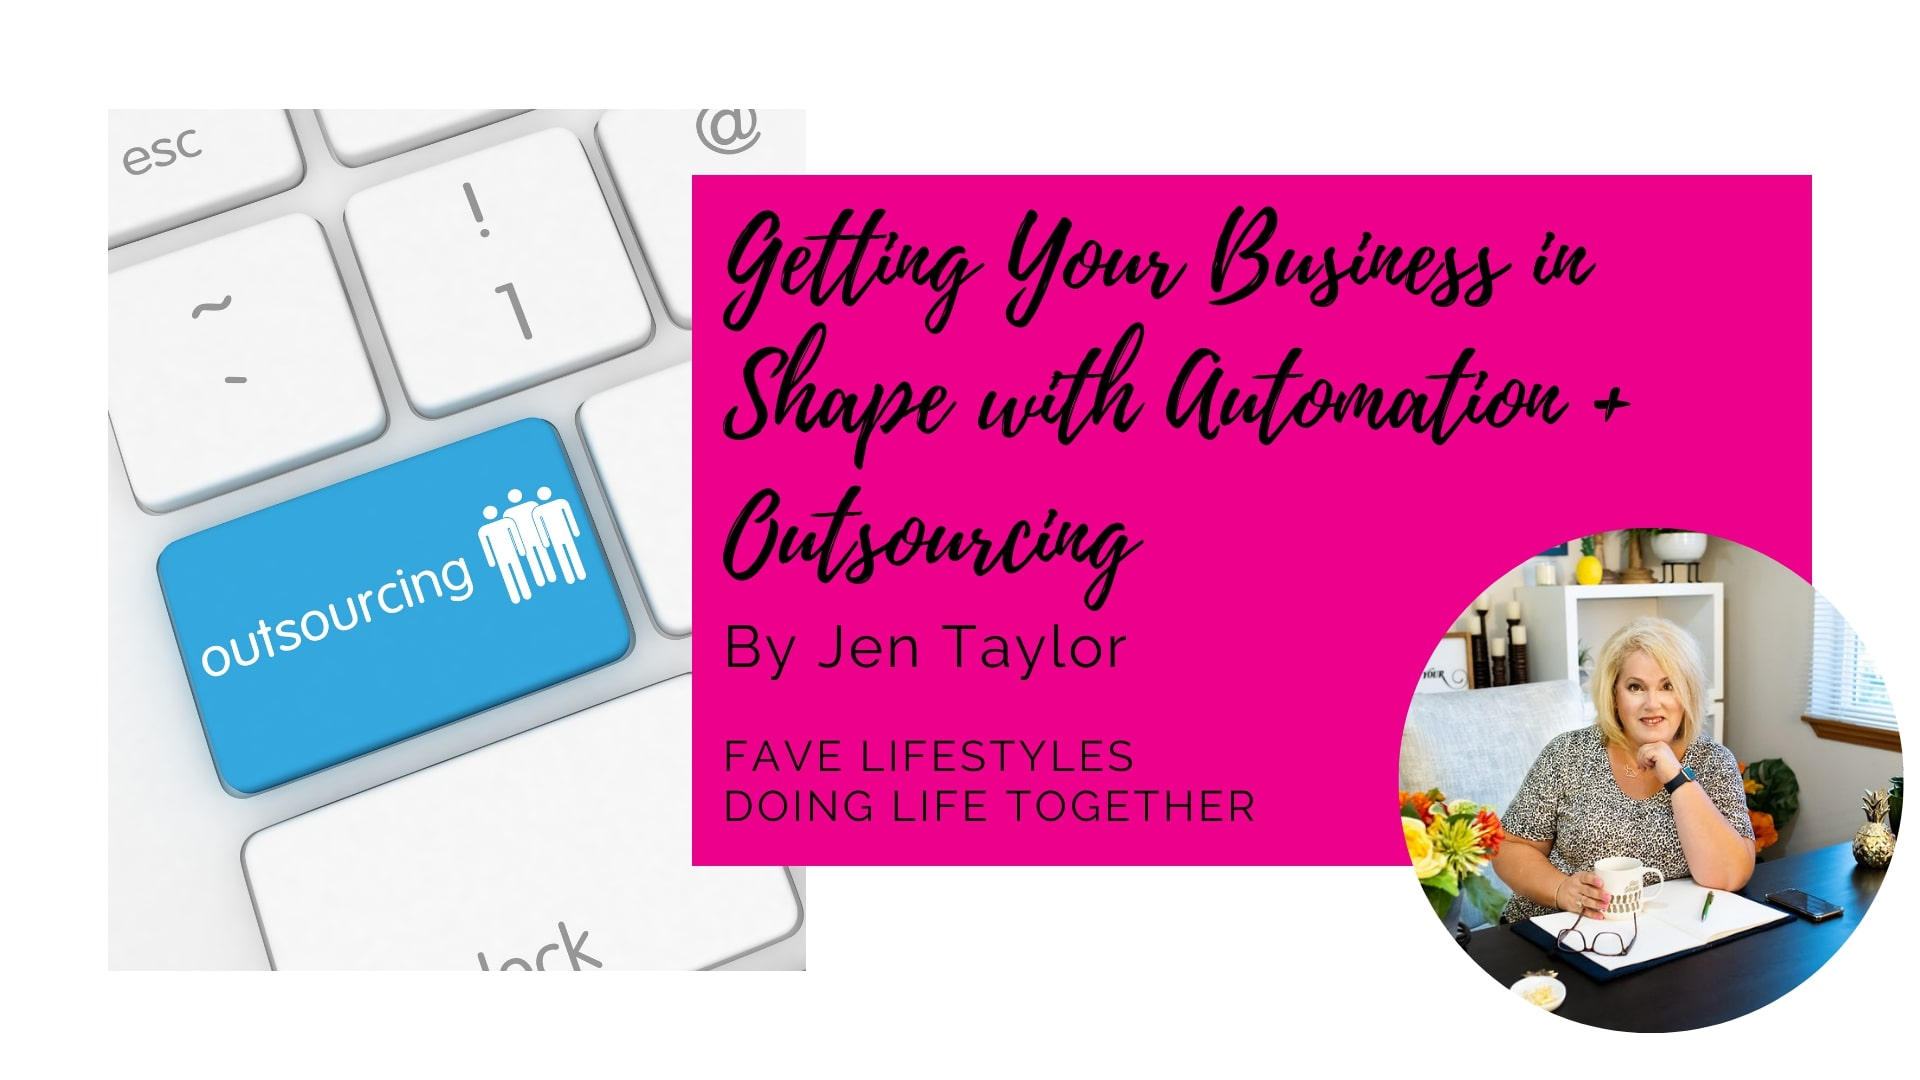 Getting Your Business in Shape with Automation + Outsourcing